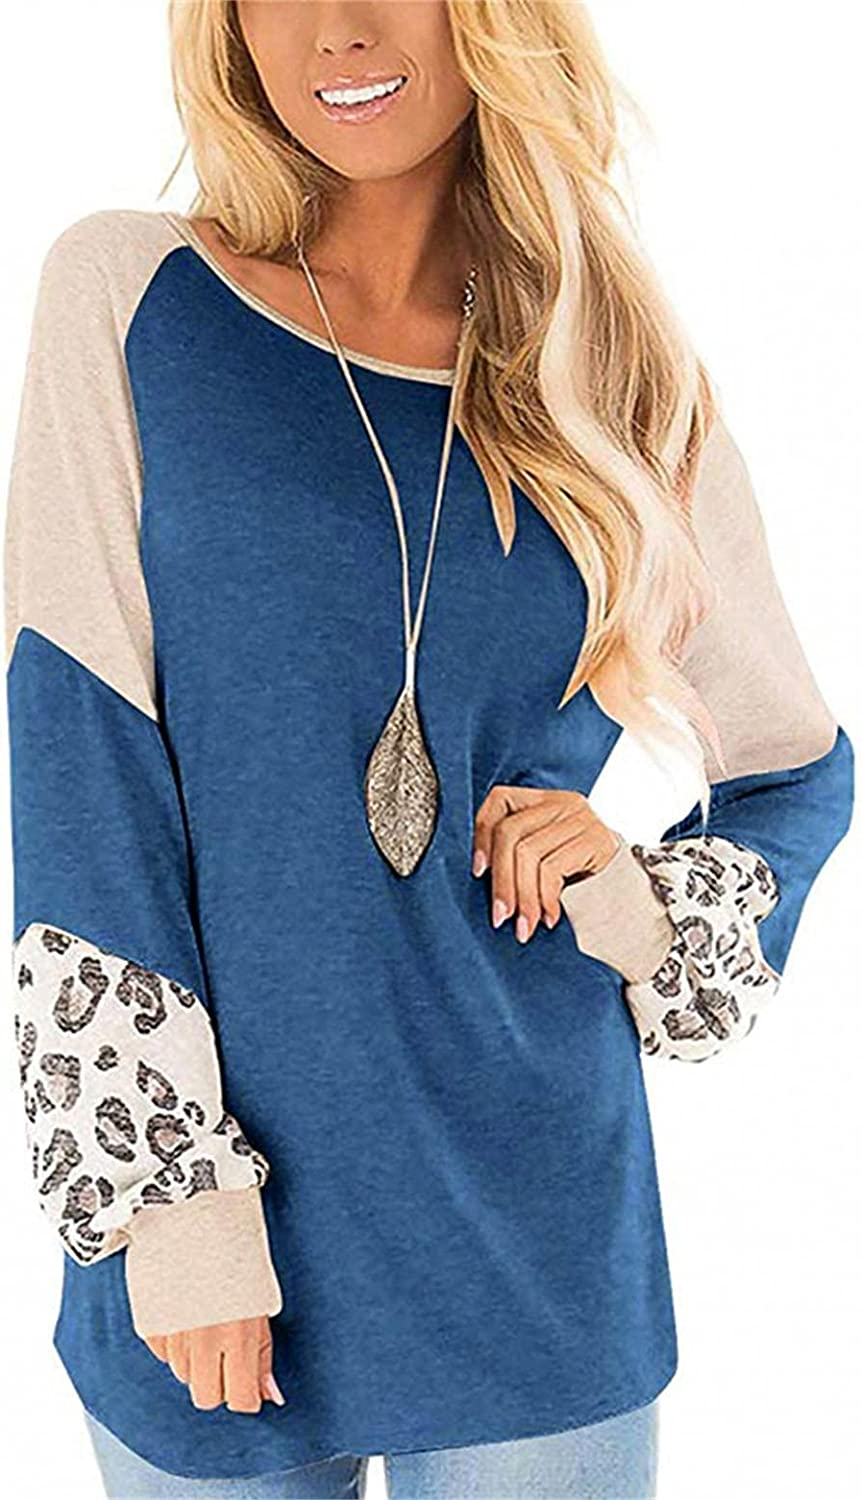 FABIURT Fall Clothes for Women,Womens Crewneck Sweatshirts Color Block Tunic Long Sleeve Sweaters Pullover Tops